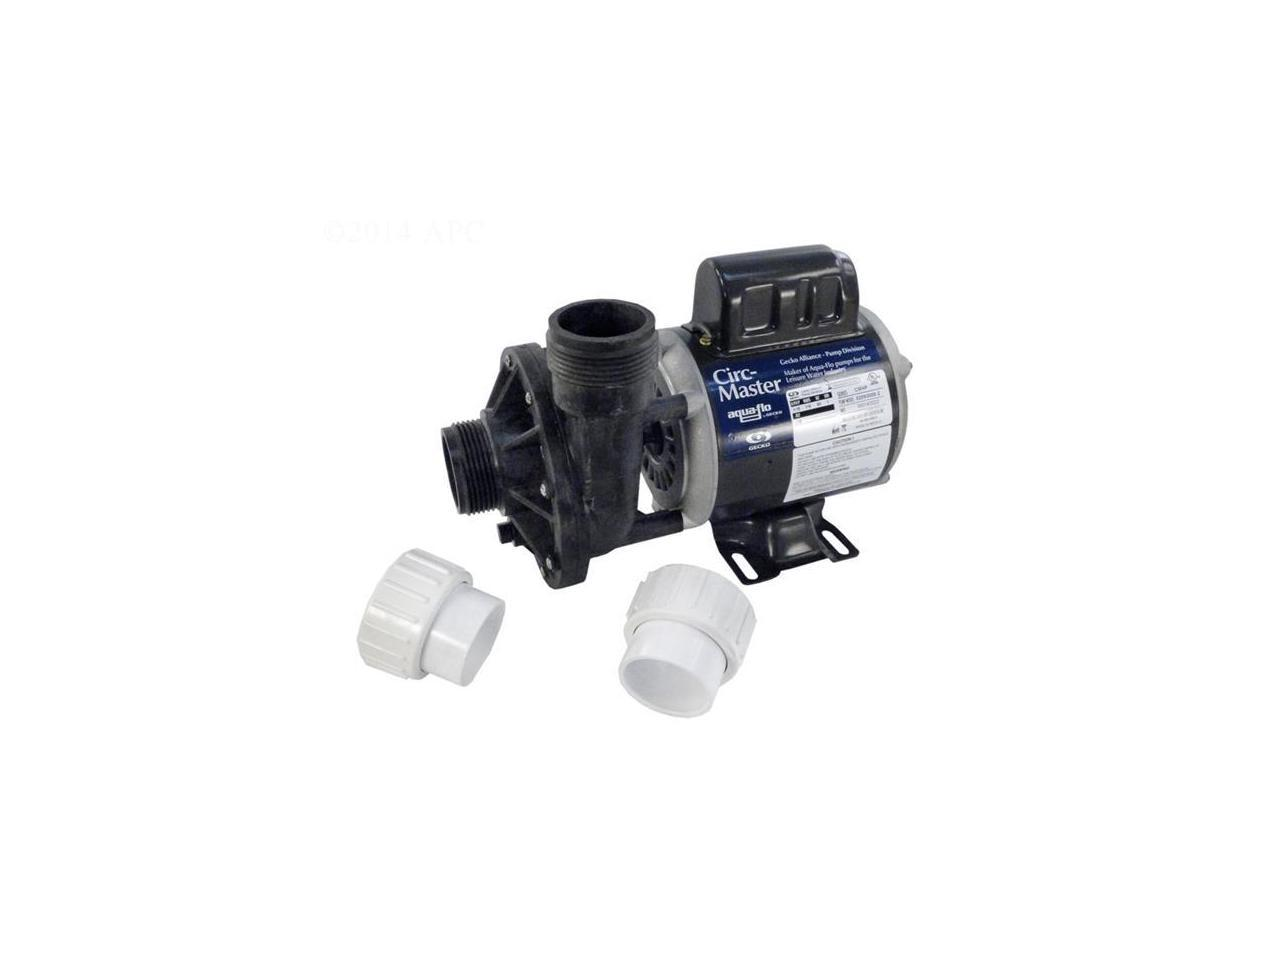 Aqua-Flo 02093001-2010 0.06 HP 230V 48Y CMHP Pump Circulation Circ-Master